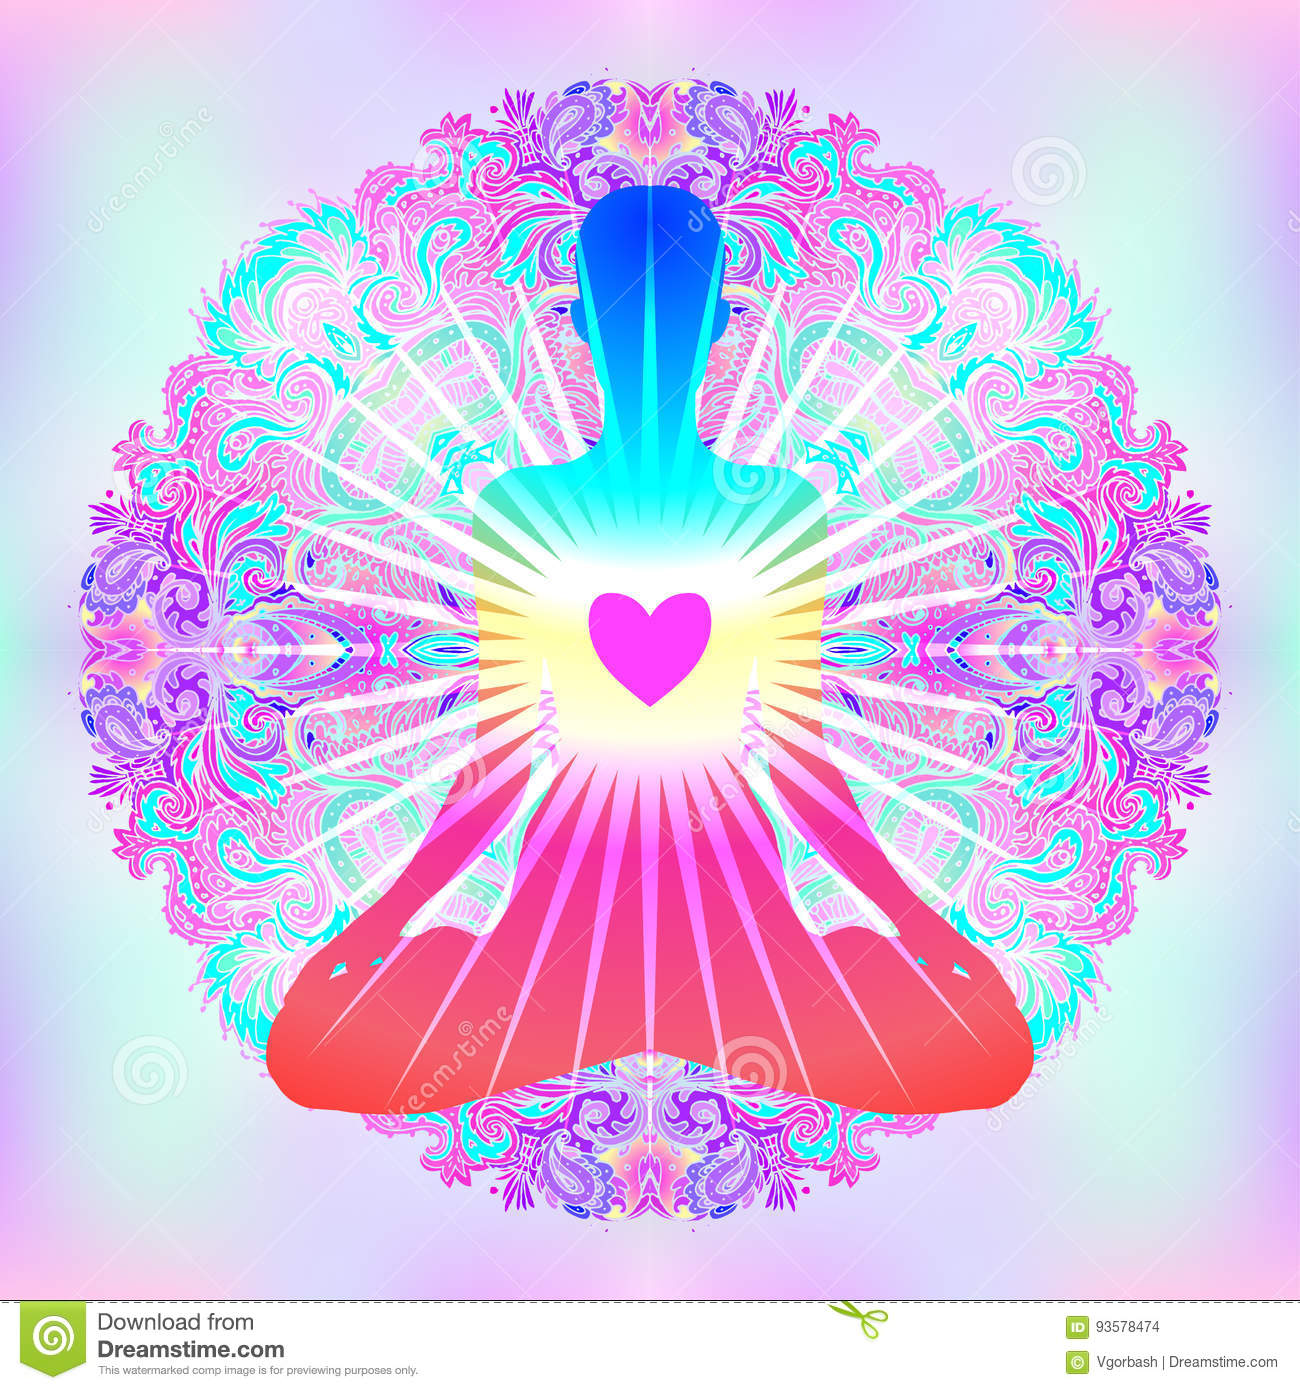 heart chakra concept inner love light peace silhouette lotus position over colorful ornate mandala vector illustration 93578474 heart chakra concept inner love, light and peace silhouette in